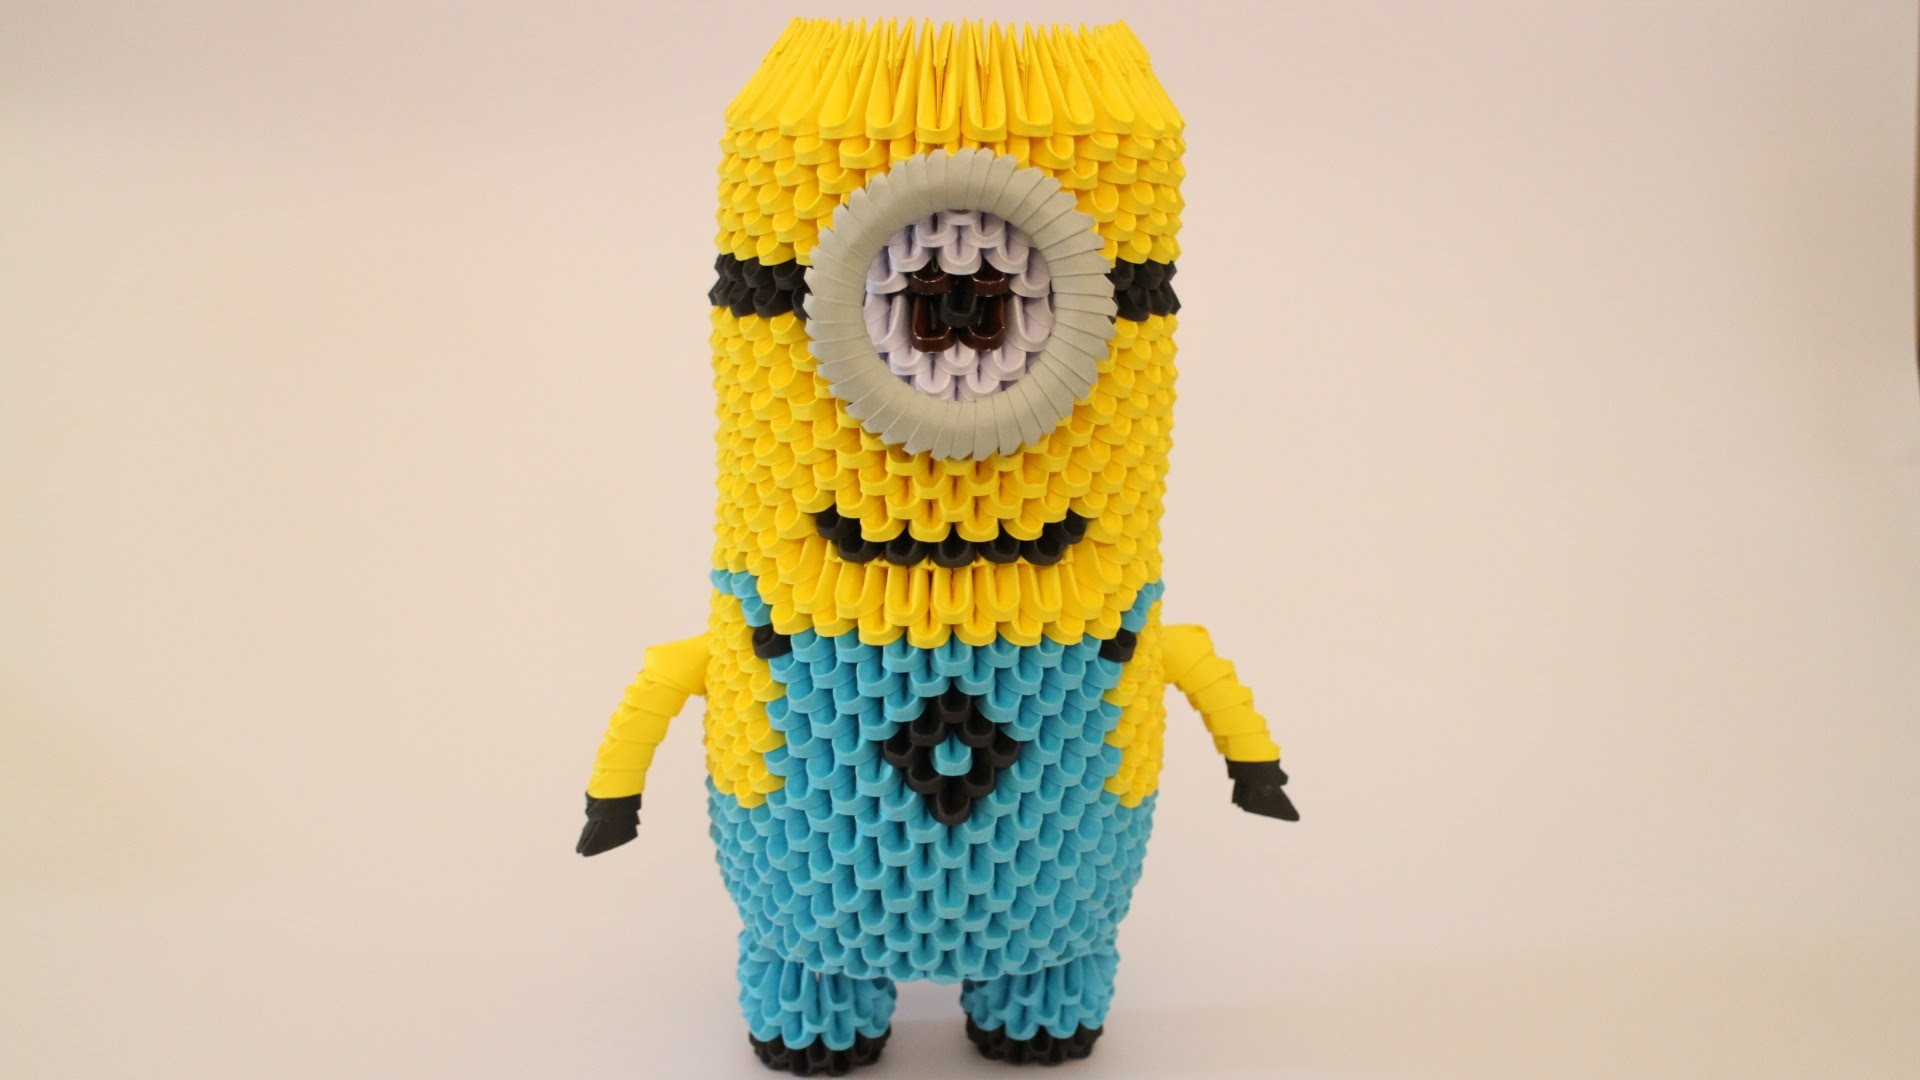 How To: 3D Origami Minion - Part 3